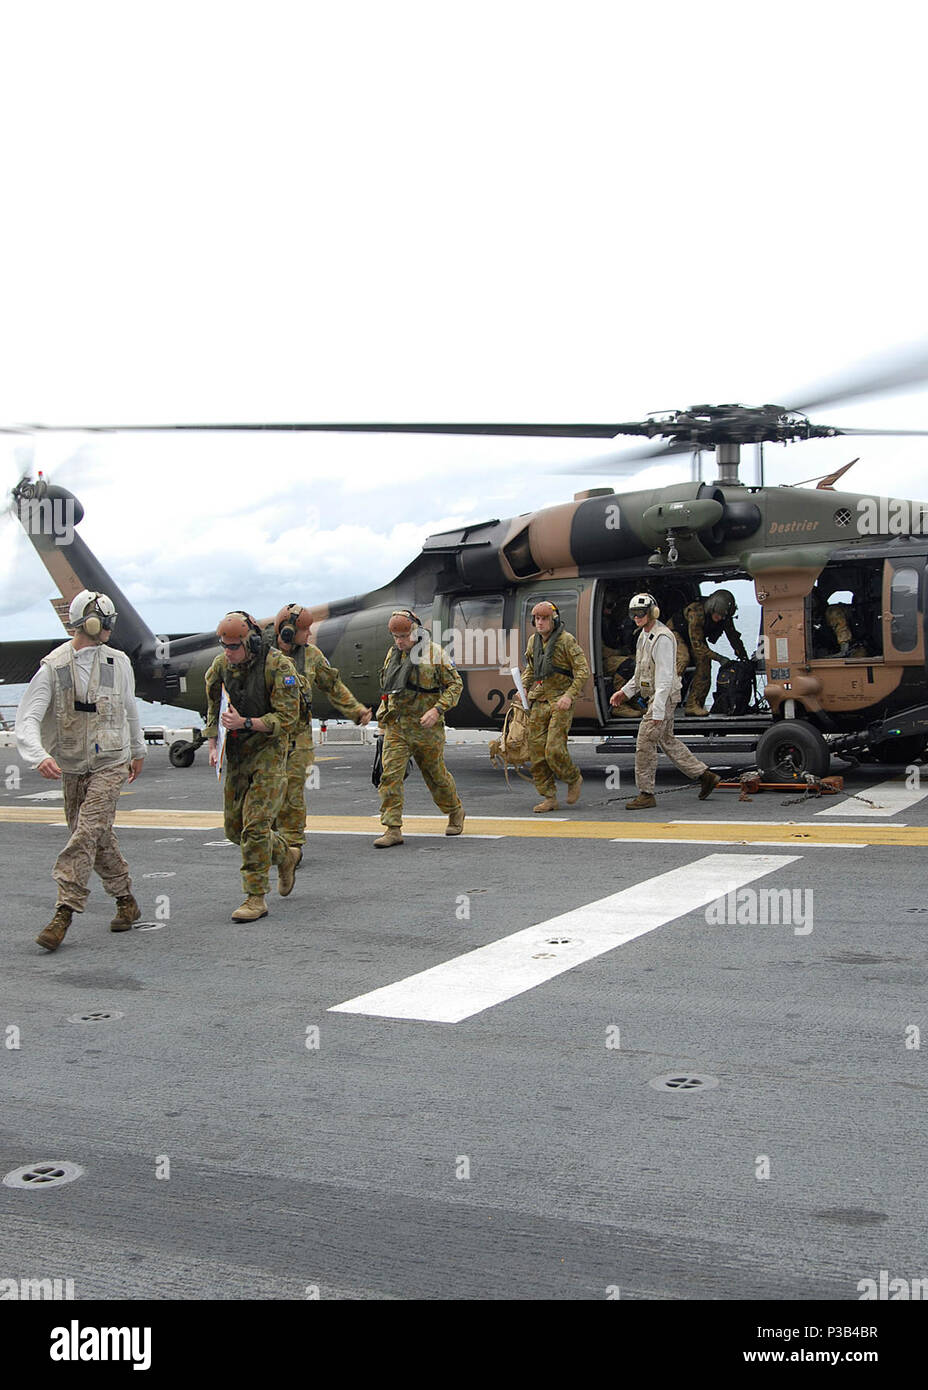 U.S. Marine Corps Lance Cpls. Tanner Foster and Brian Gill, both in white, escort Royal Australian Army pilots out of an S-70 Black Hawk helicopter aboard the forward-deployed amphibious assault ship USS Essex (LHD 2) July 8, 2009, while under way in the Coral Sea. The pilots are touring the ship before the scheduled Talisman Sabre 2009, a biennial, joint, combined exercise sponsored by U.S. Pacific Command and the Australian Defense Force that focuses on the planning and execution of contingency response operations. (DoD Stock Photo